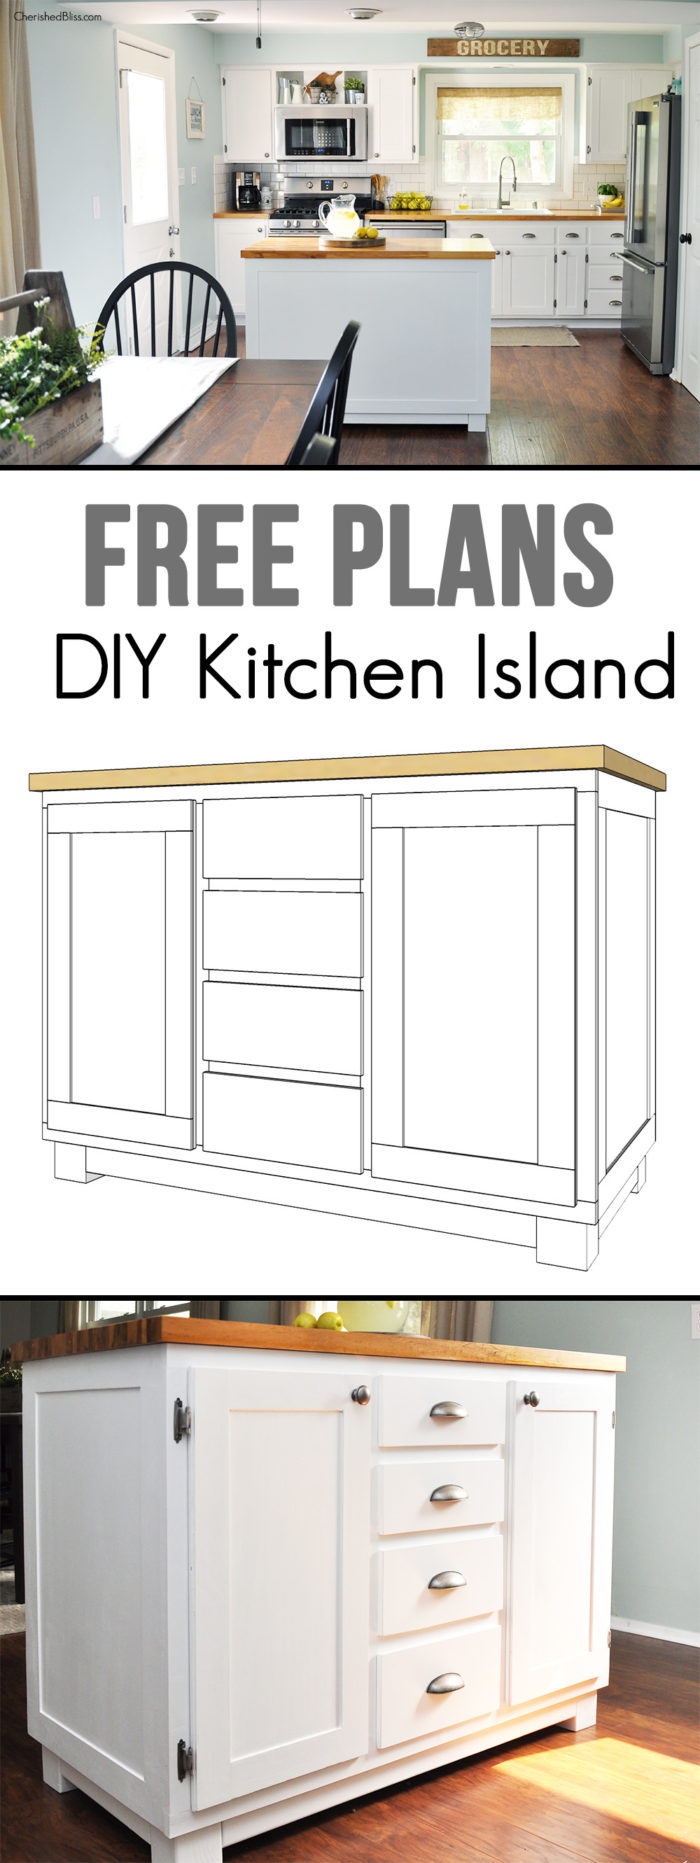 How to build a diy kitchen island cherished bliss for Build kitchen island with cabinets